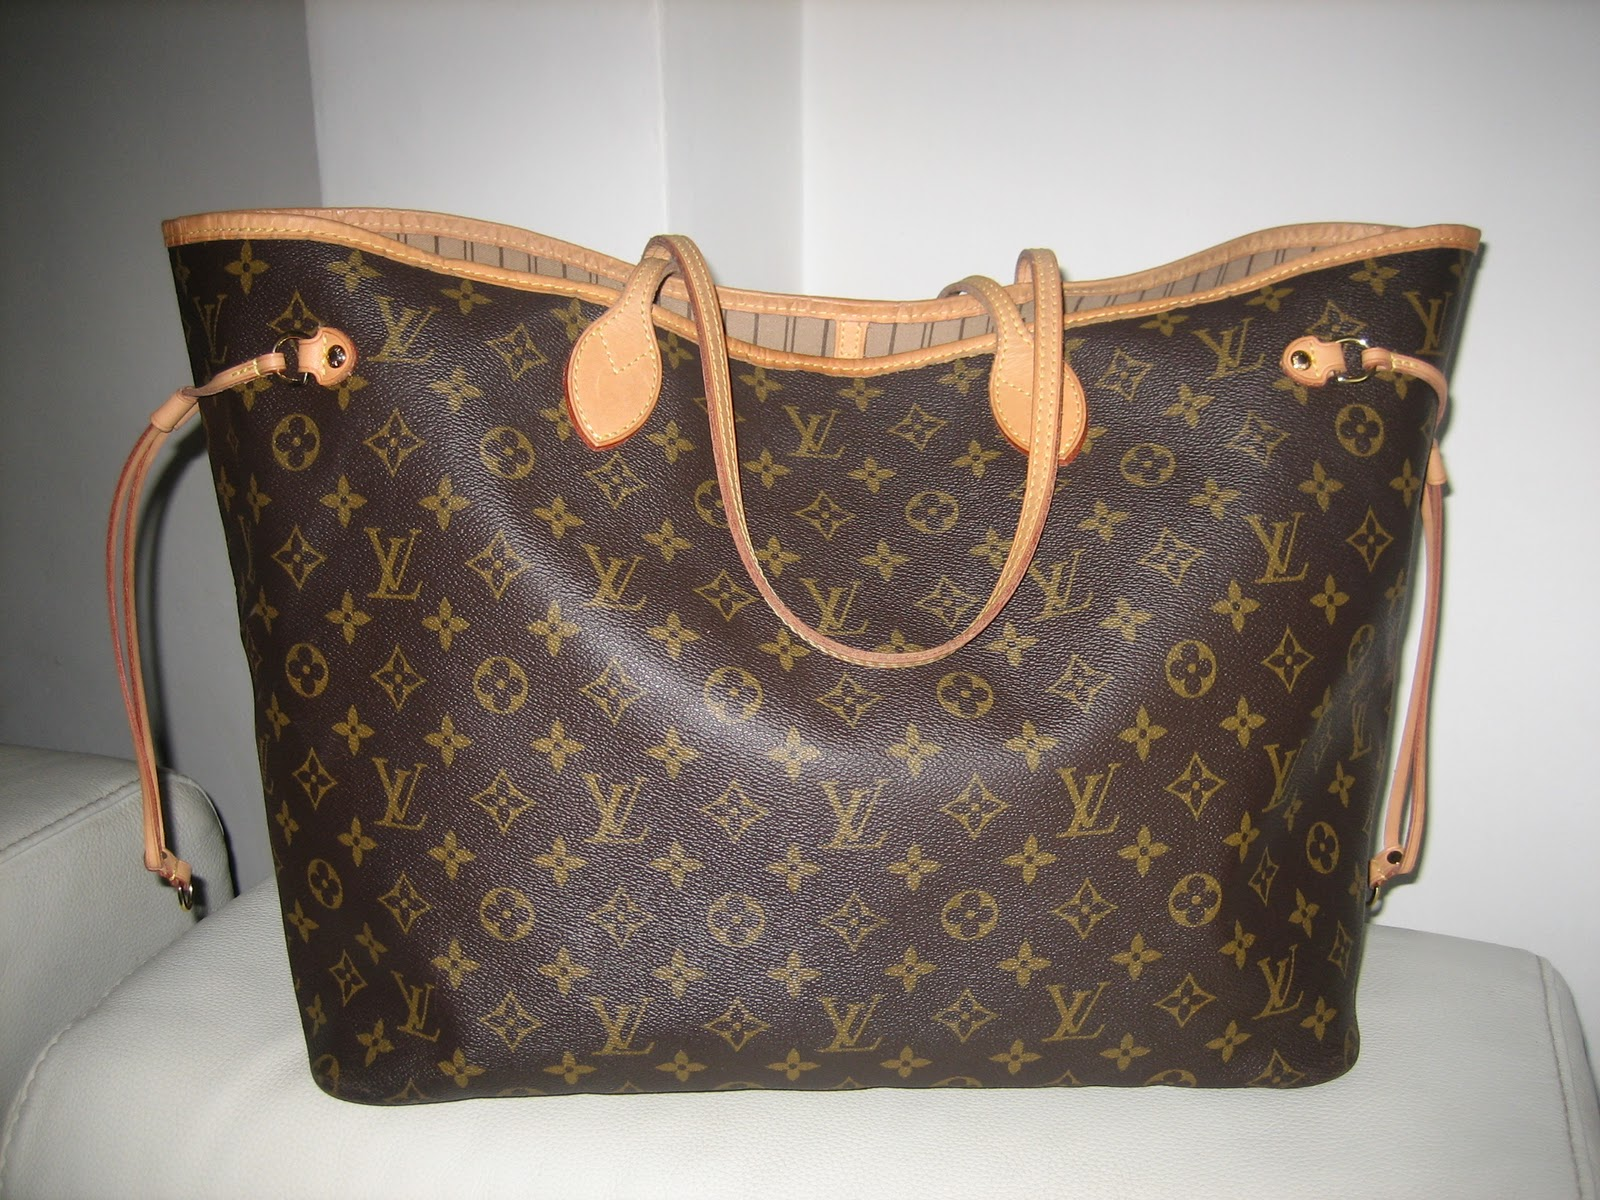 sac louis vuitton